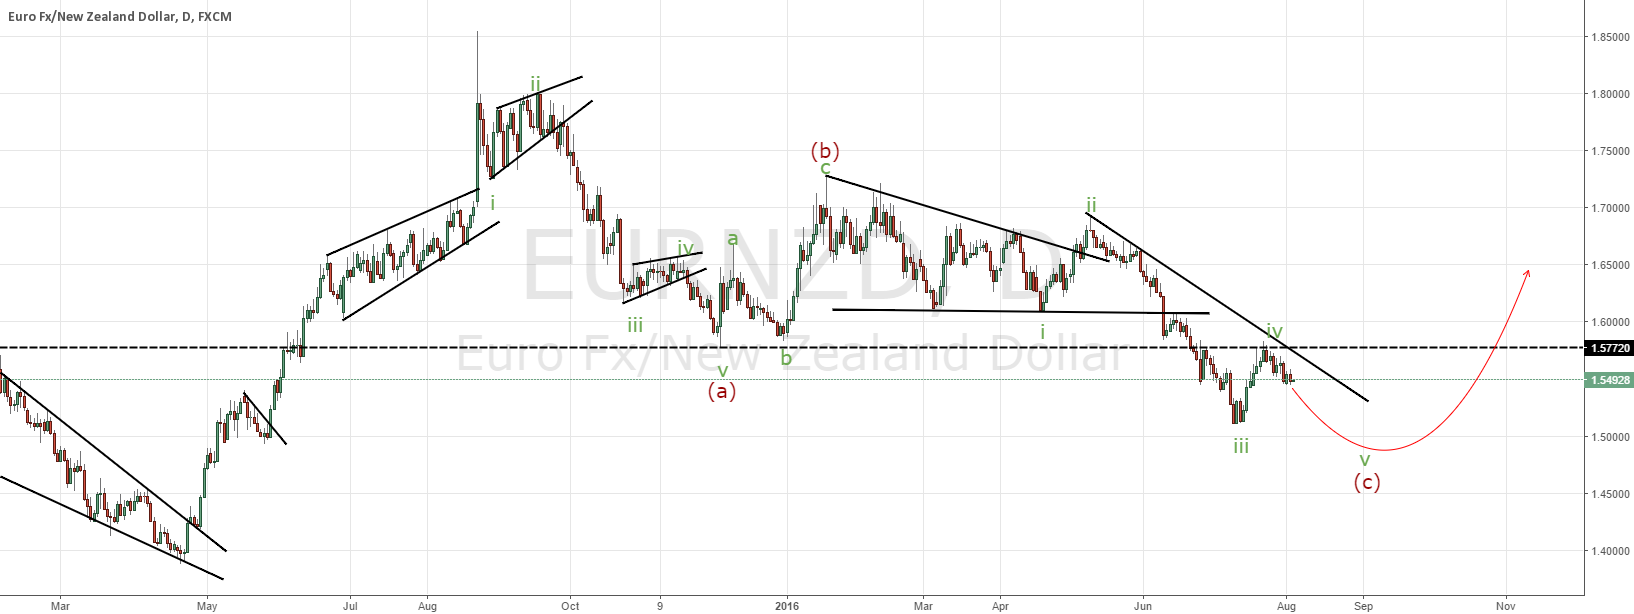 EURNZD one leg lower